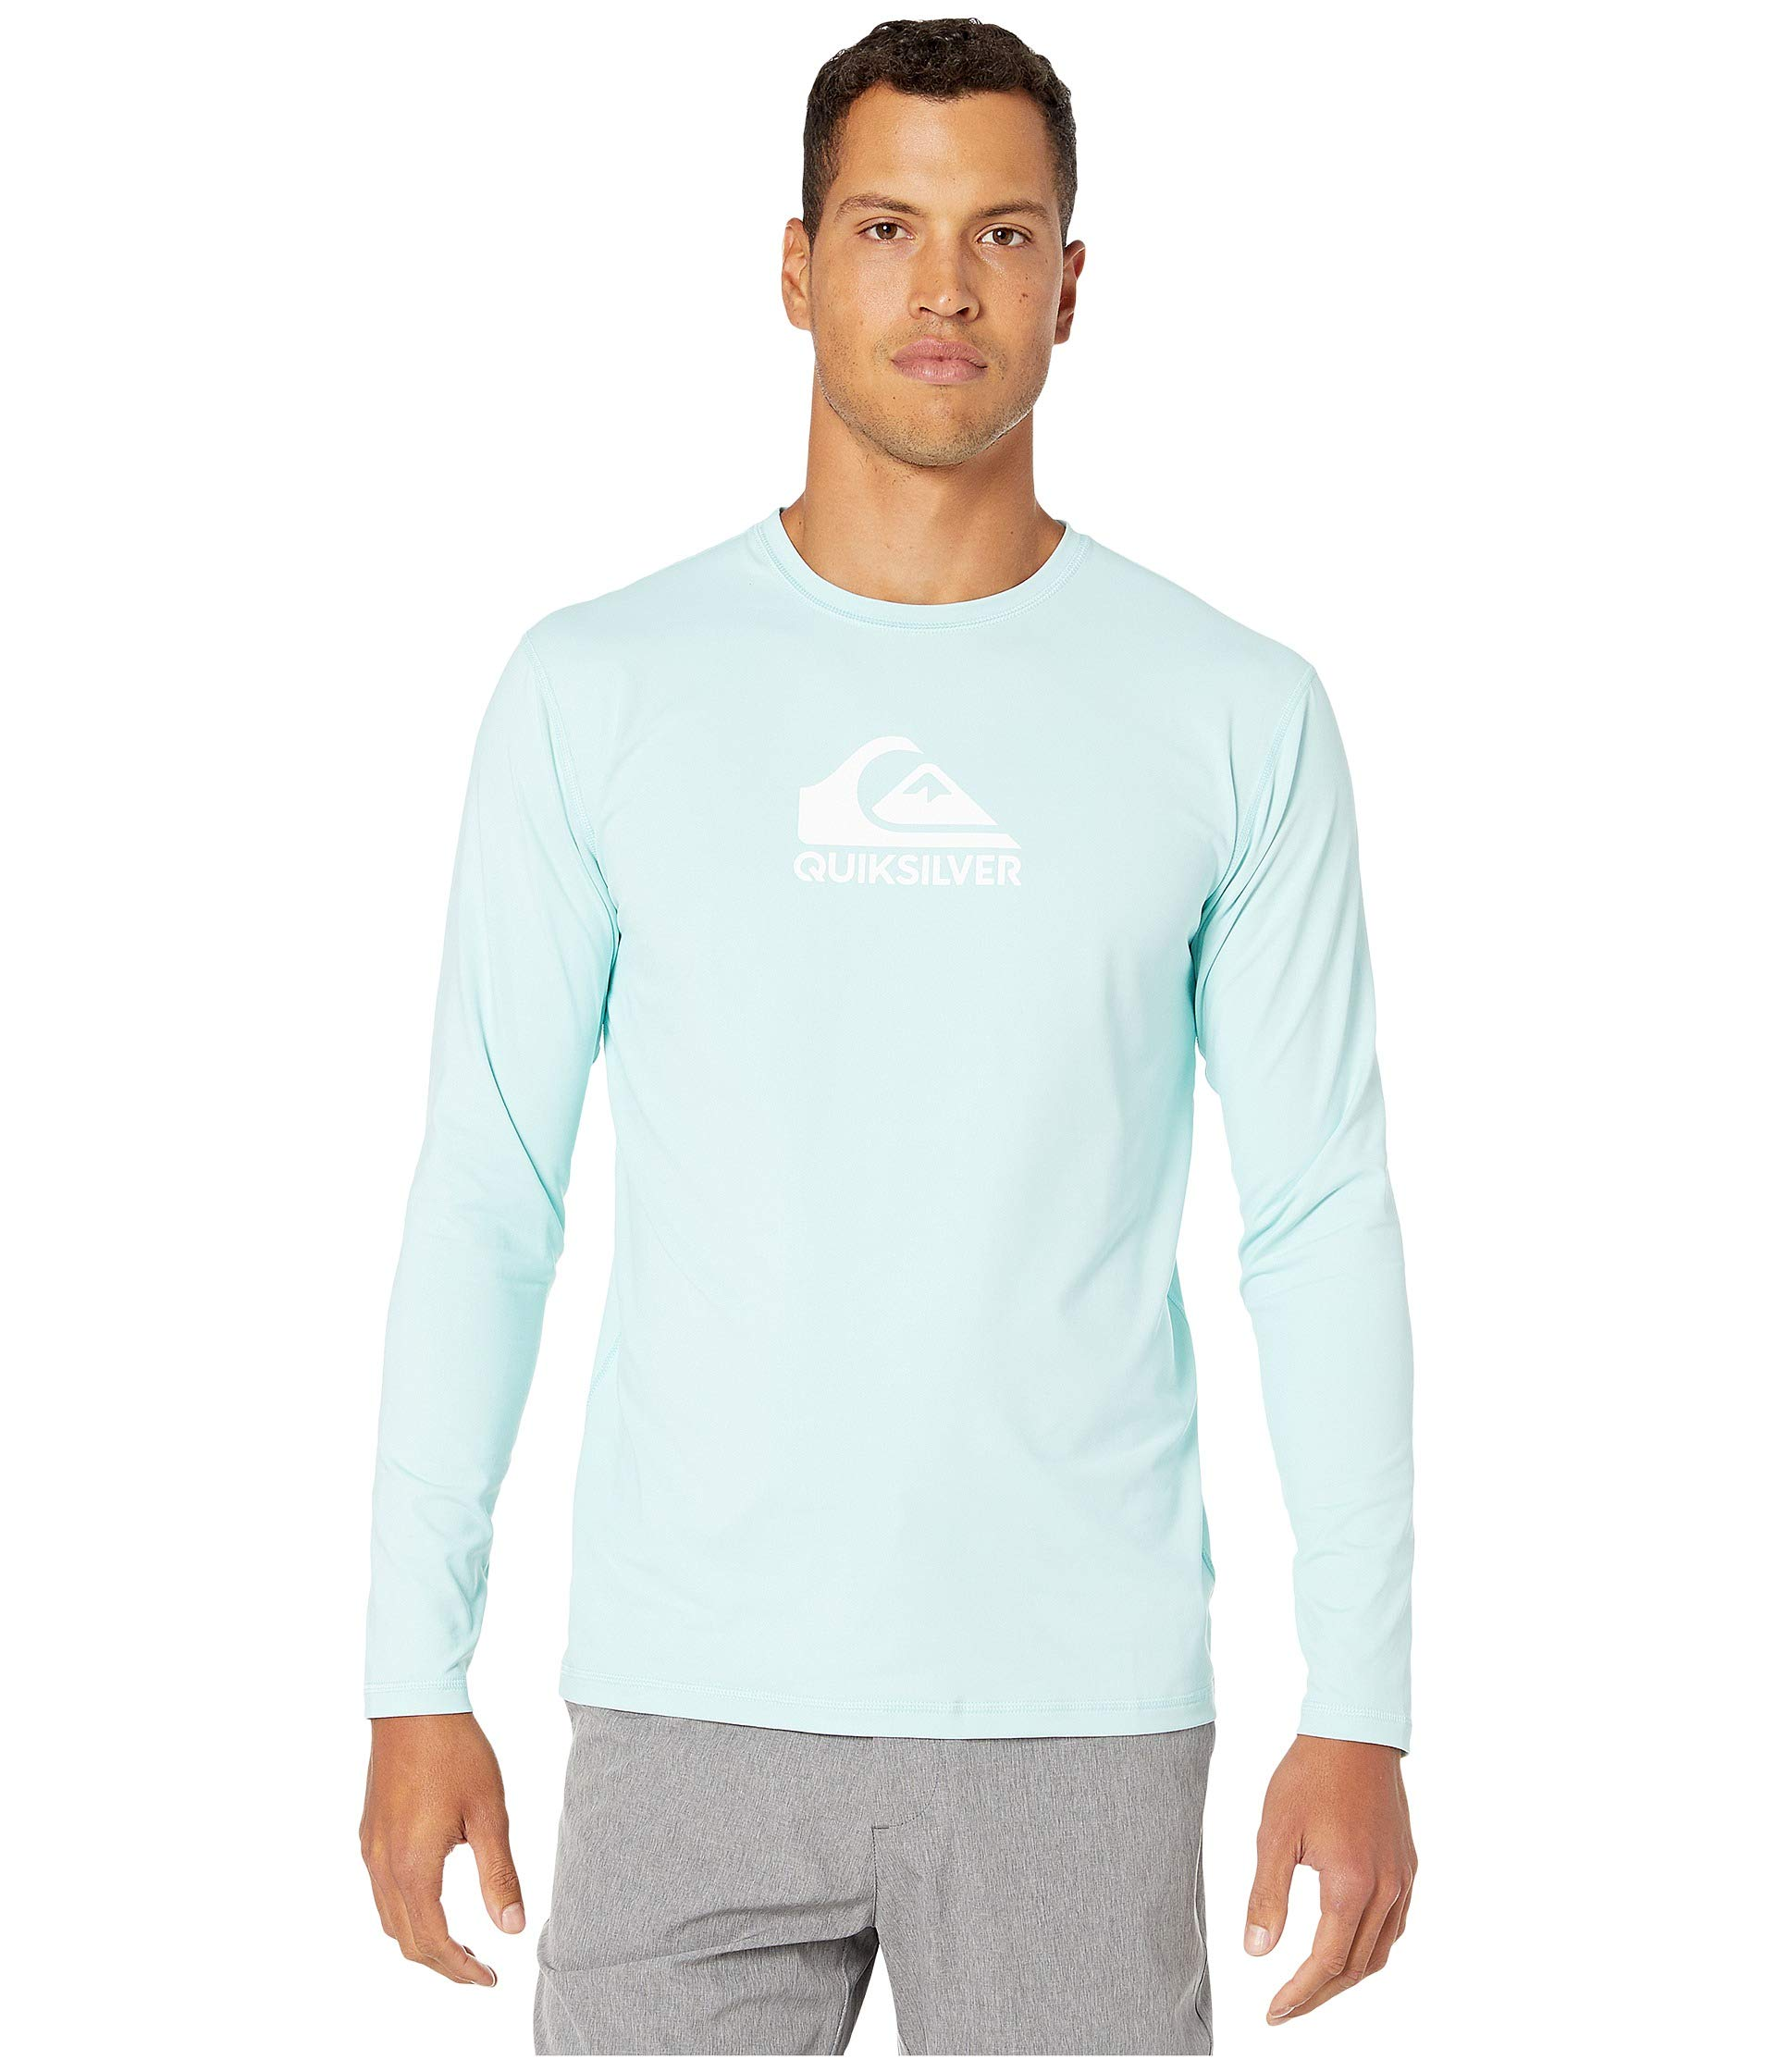 Quiksilver Solid Streak Long Sleeve Rashguard Pastel Turquoise LG by Quiksilver